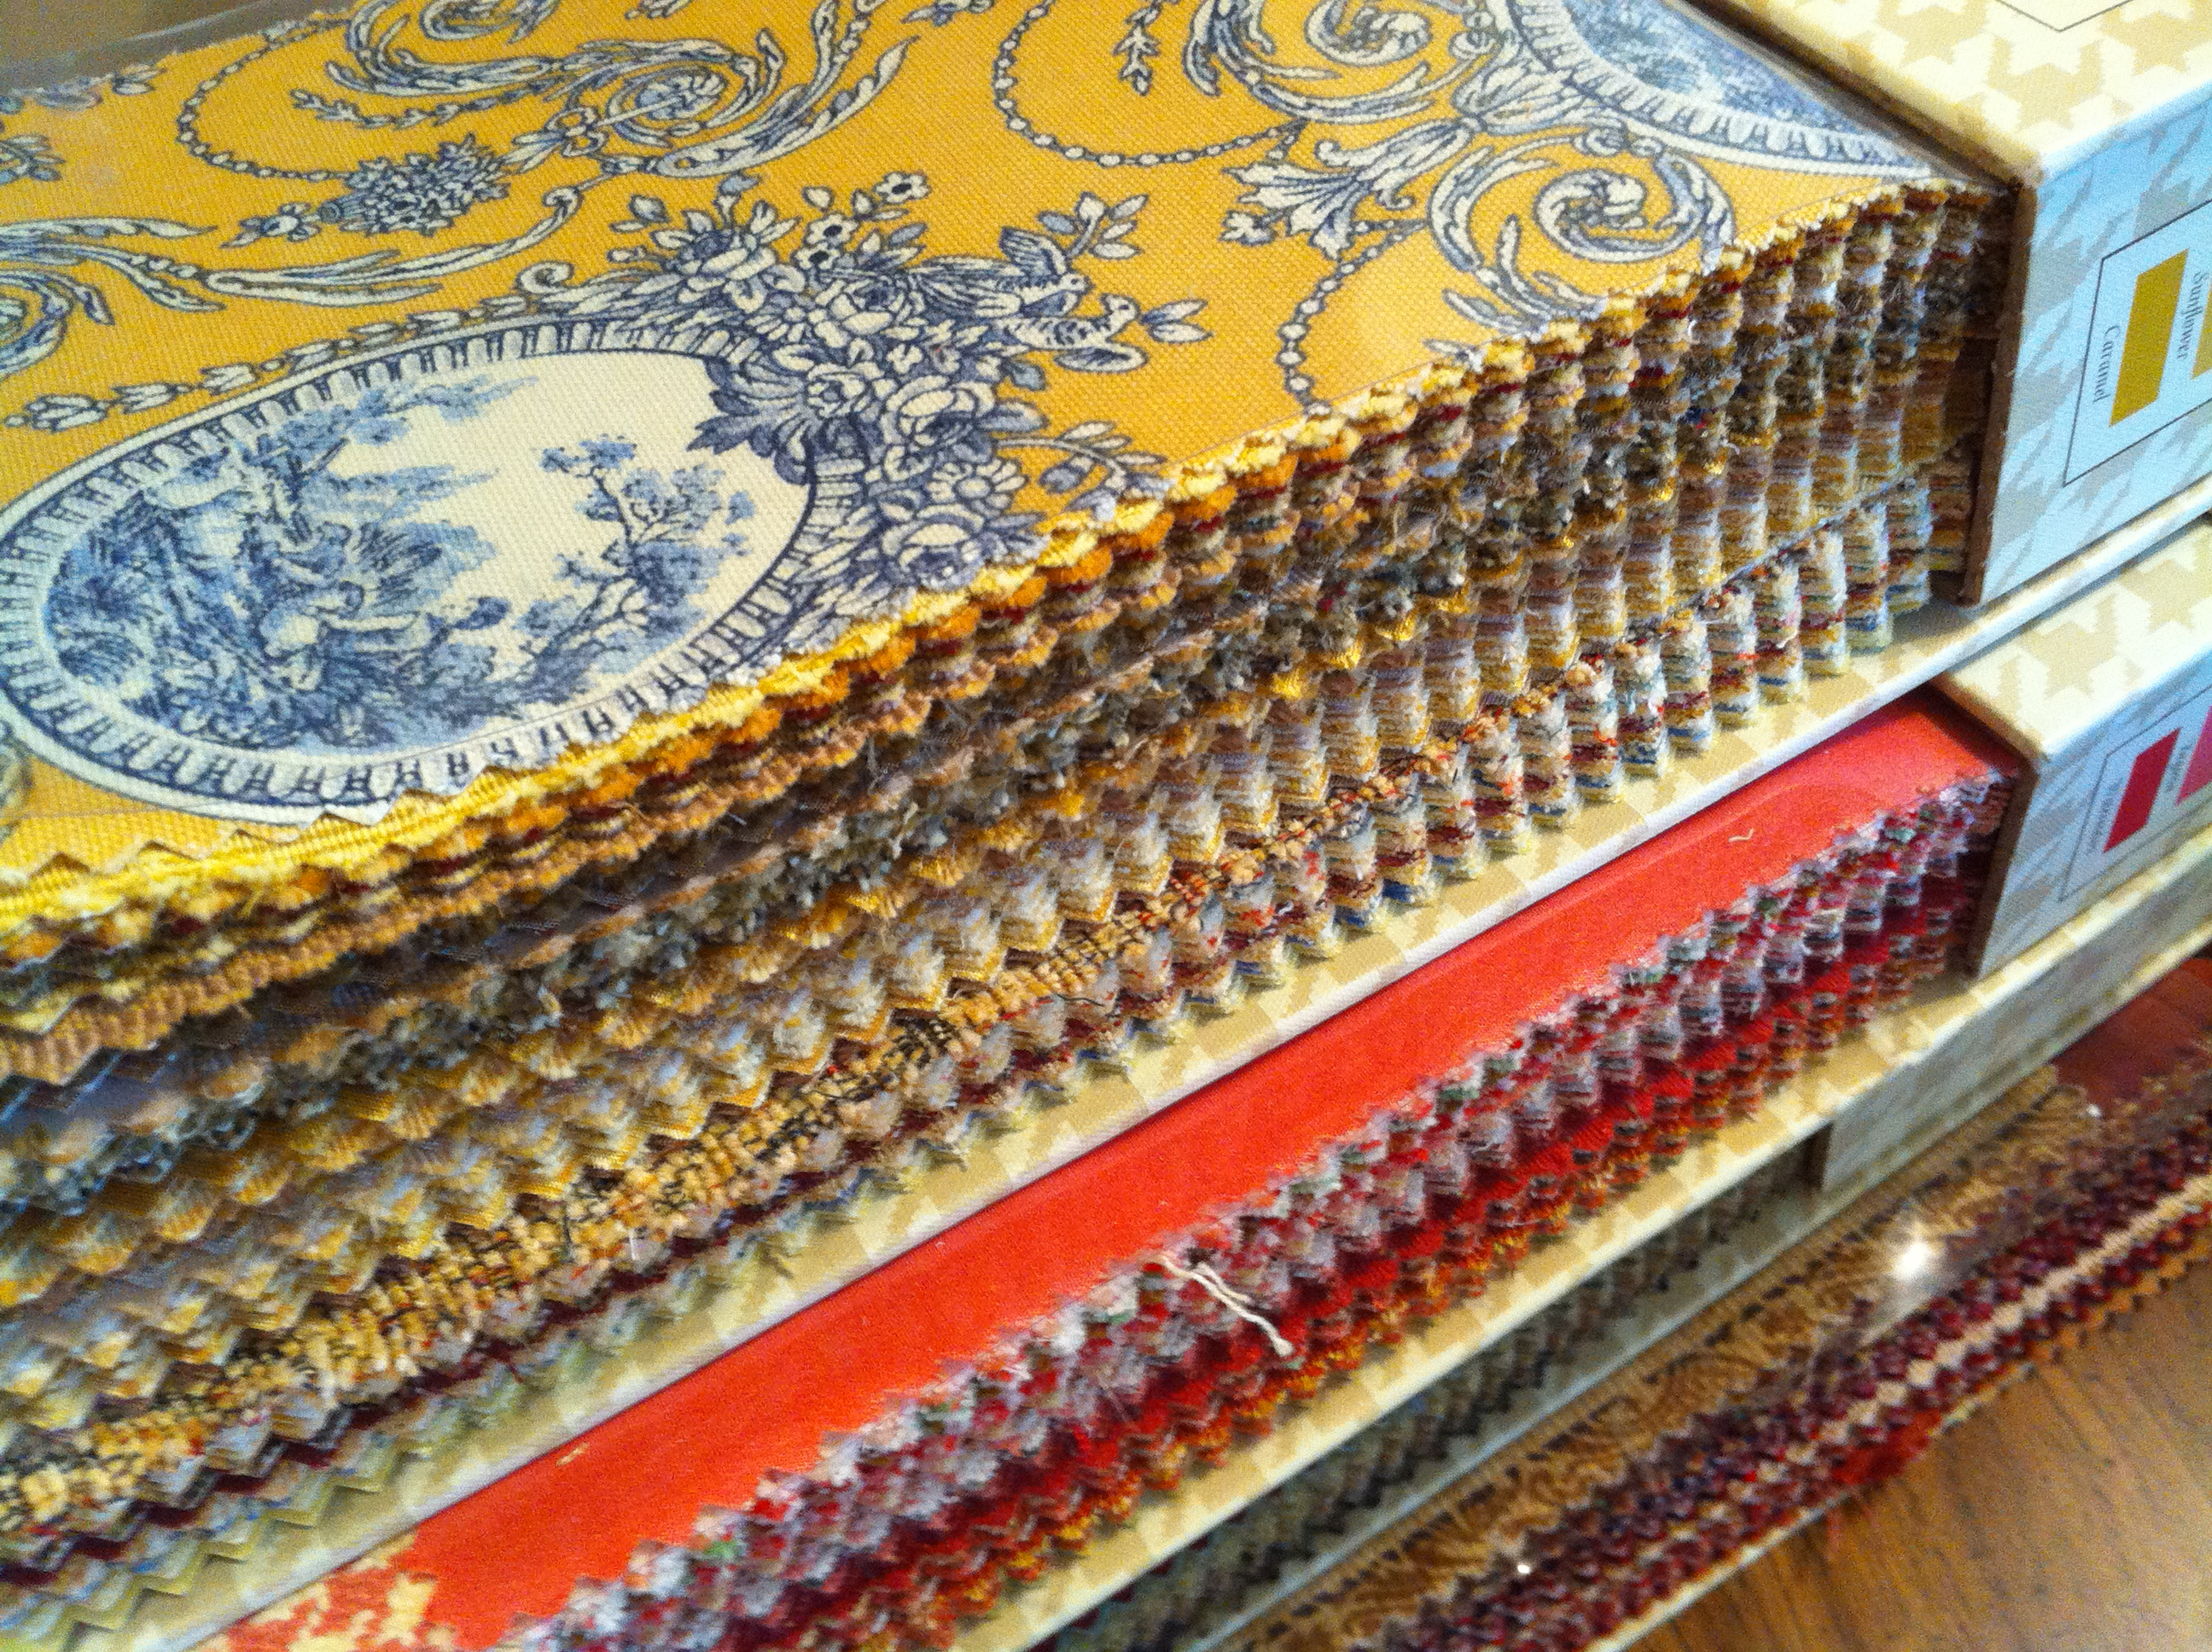 Fabric samples reupholstery